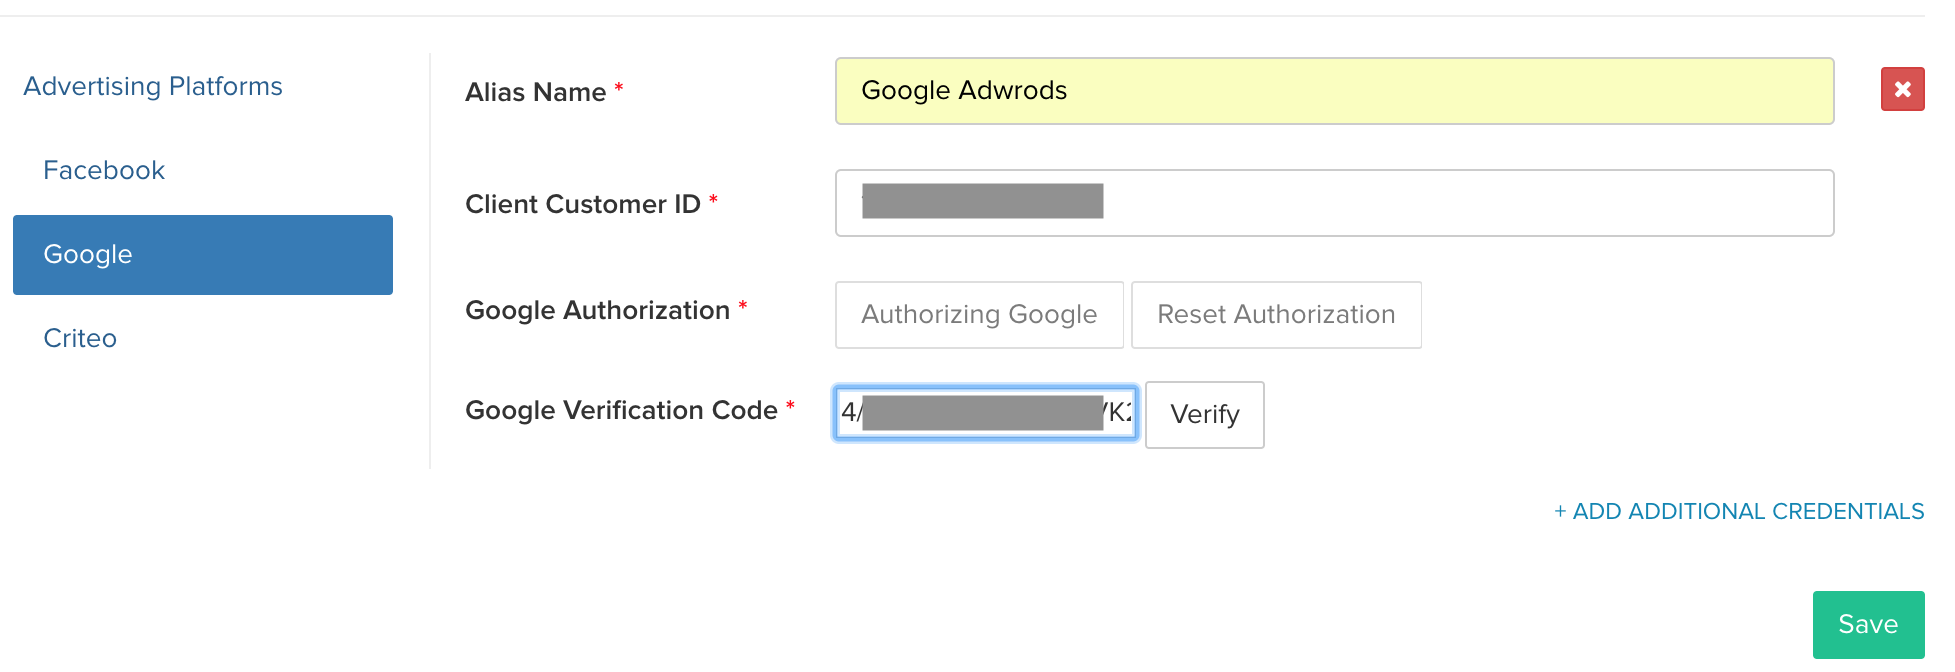 verification_code_goog_1.png